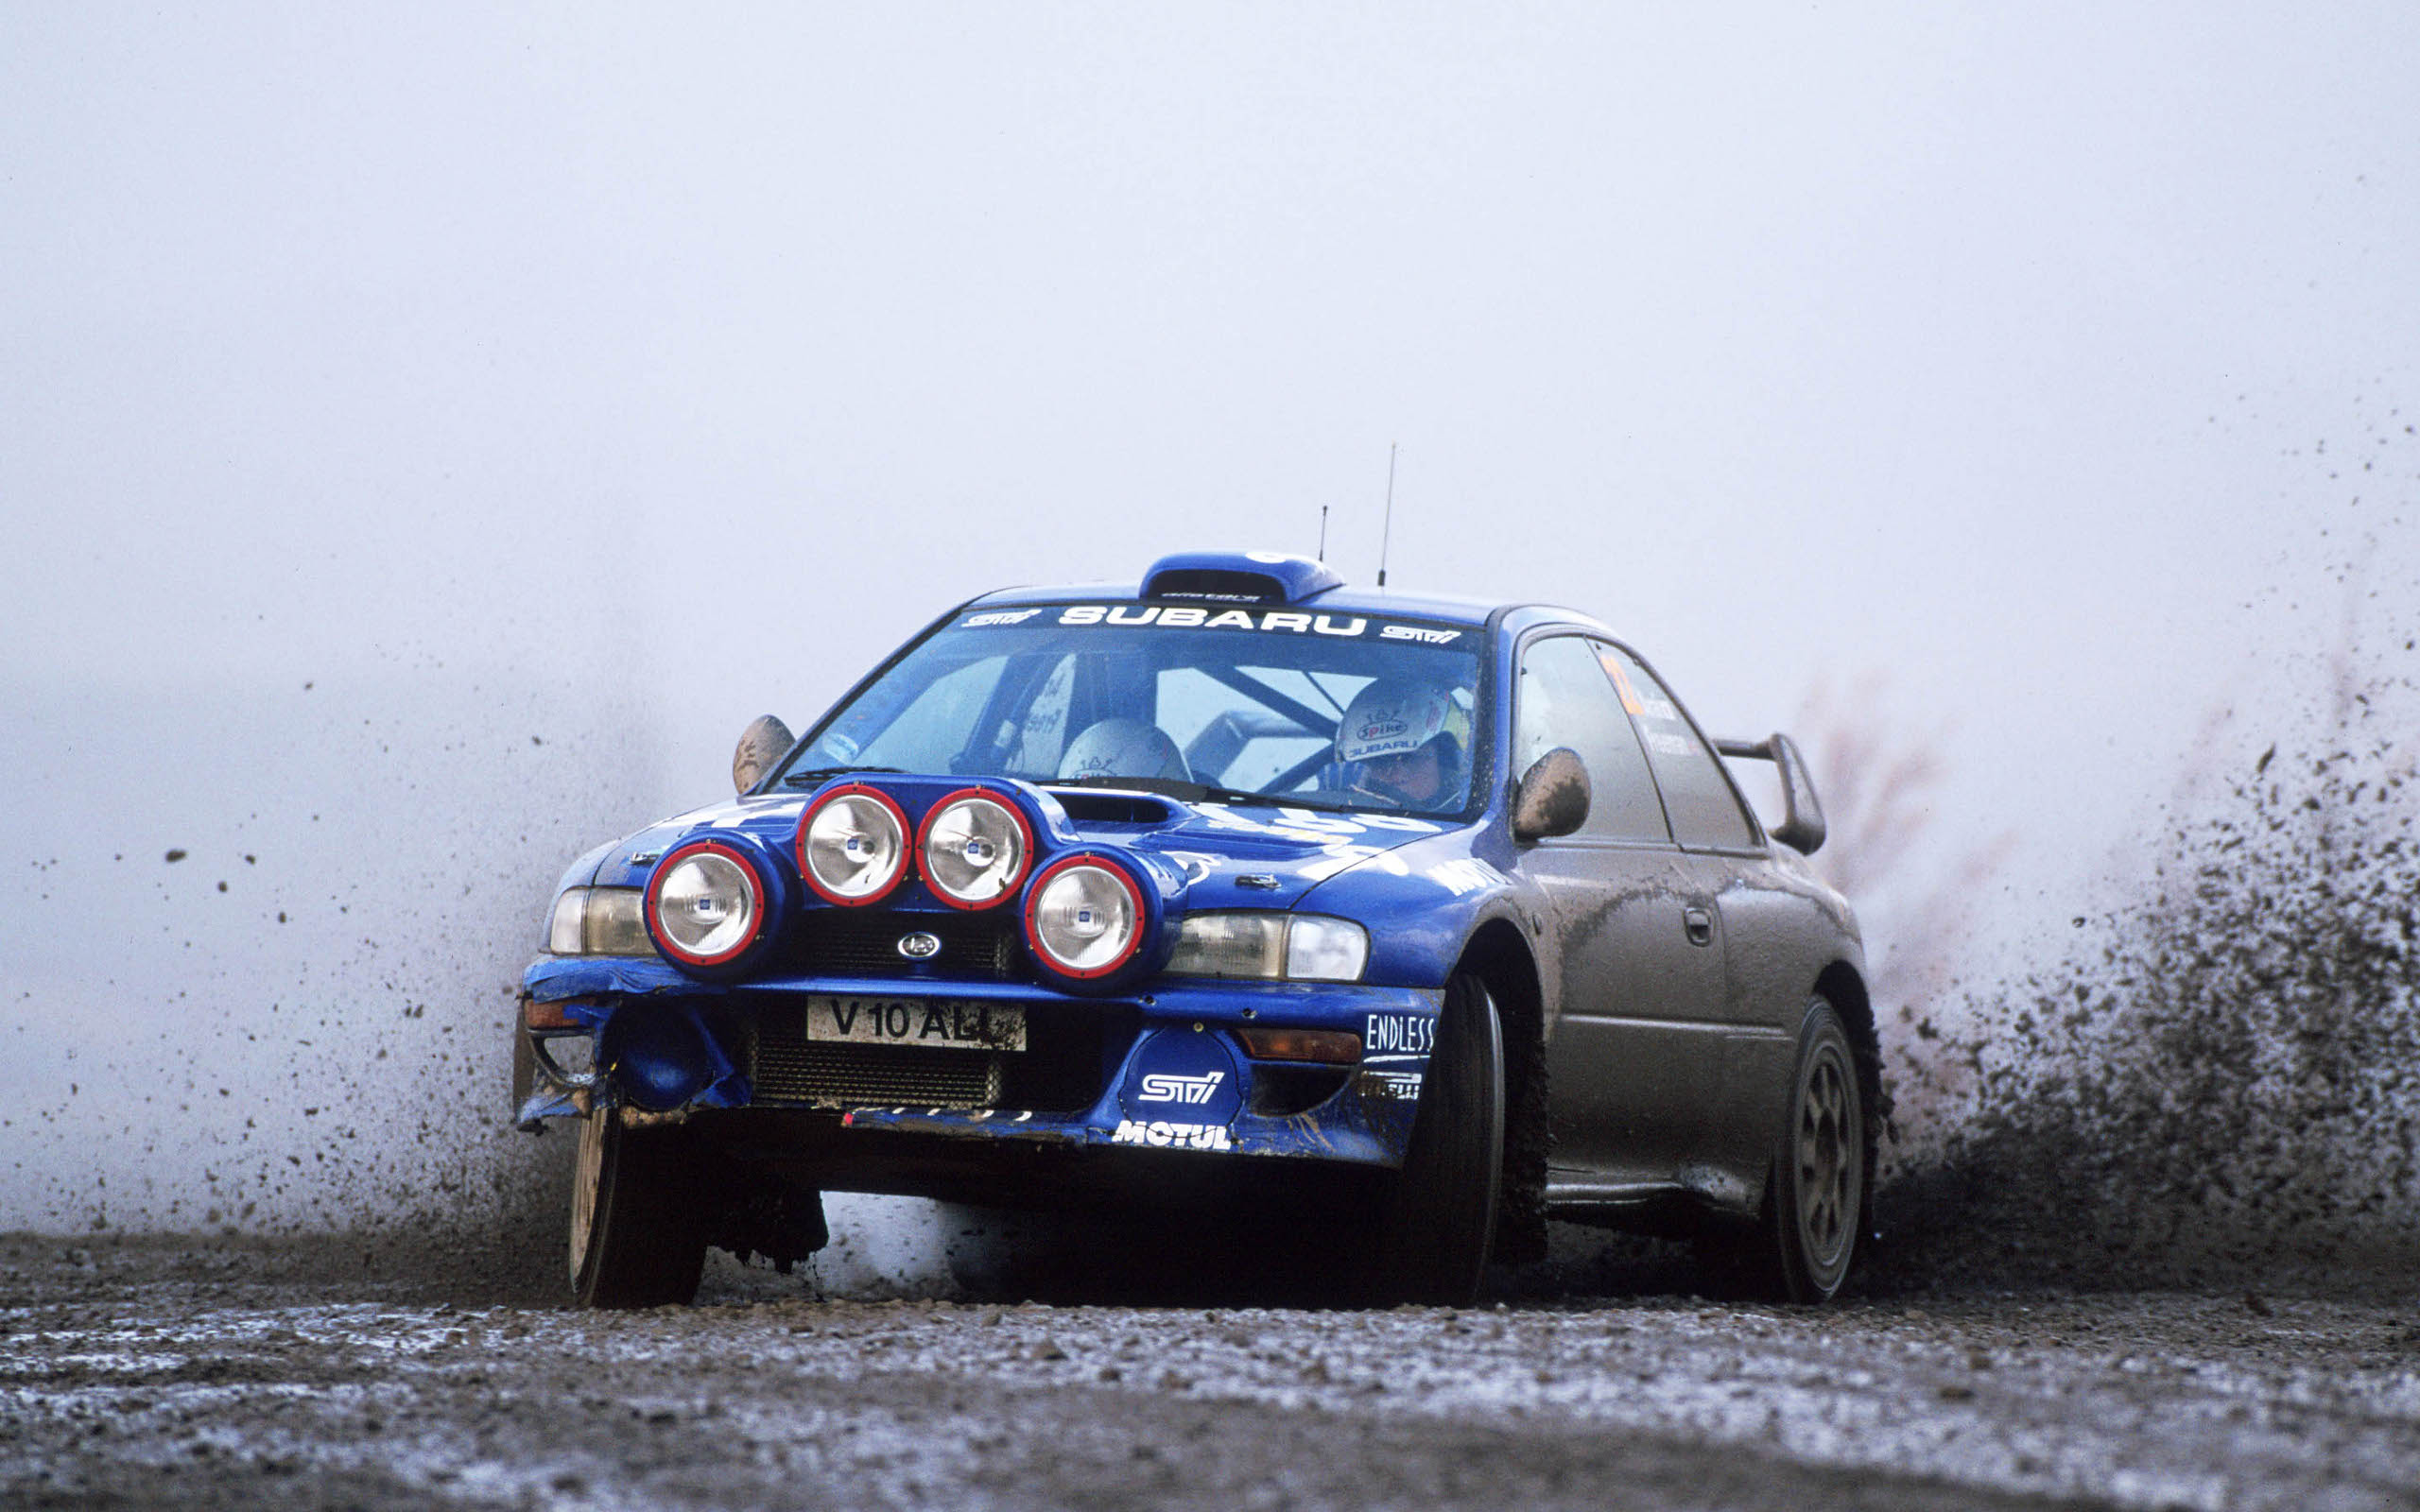 Small Size Car Wallpapers Cars Subaru Impreza Wrx Sti Rally Car Wallpaper